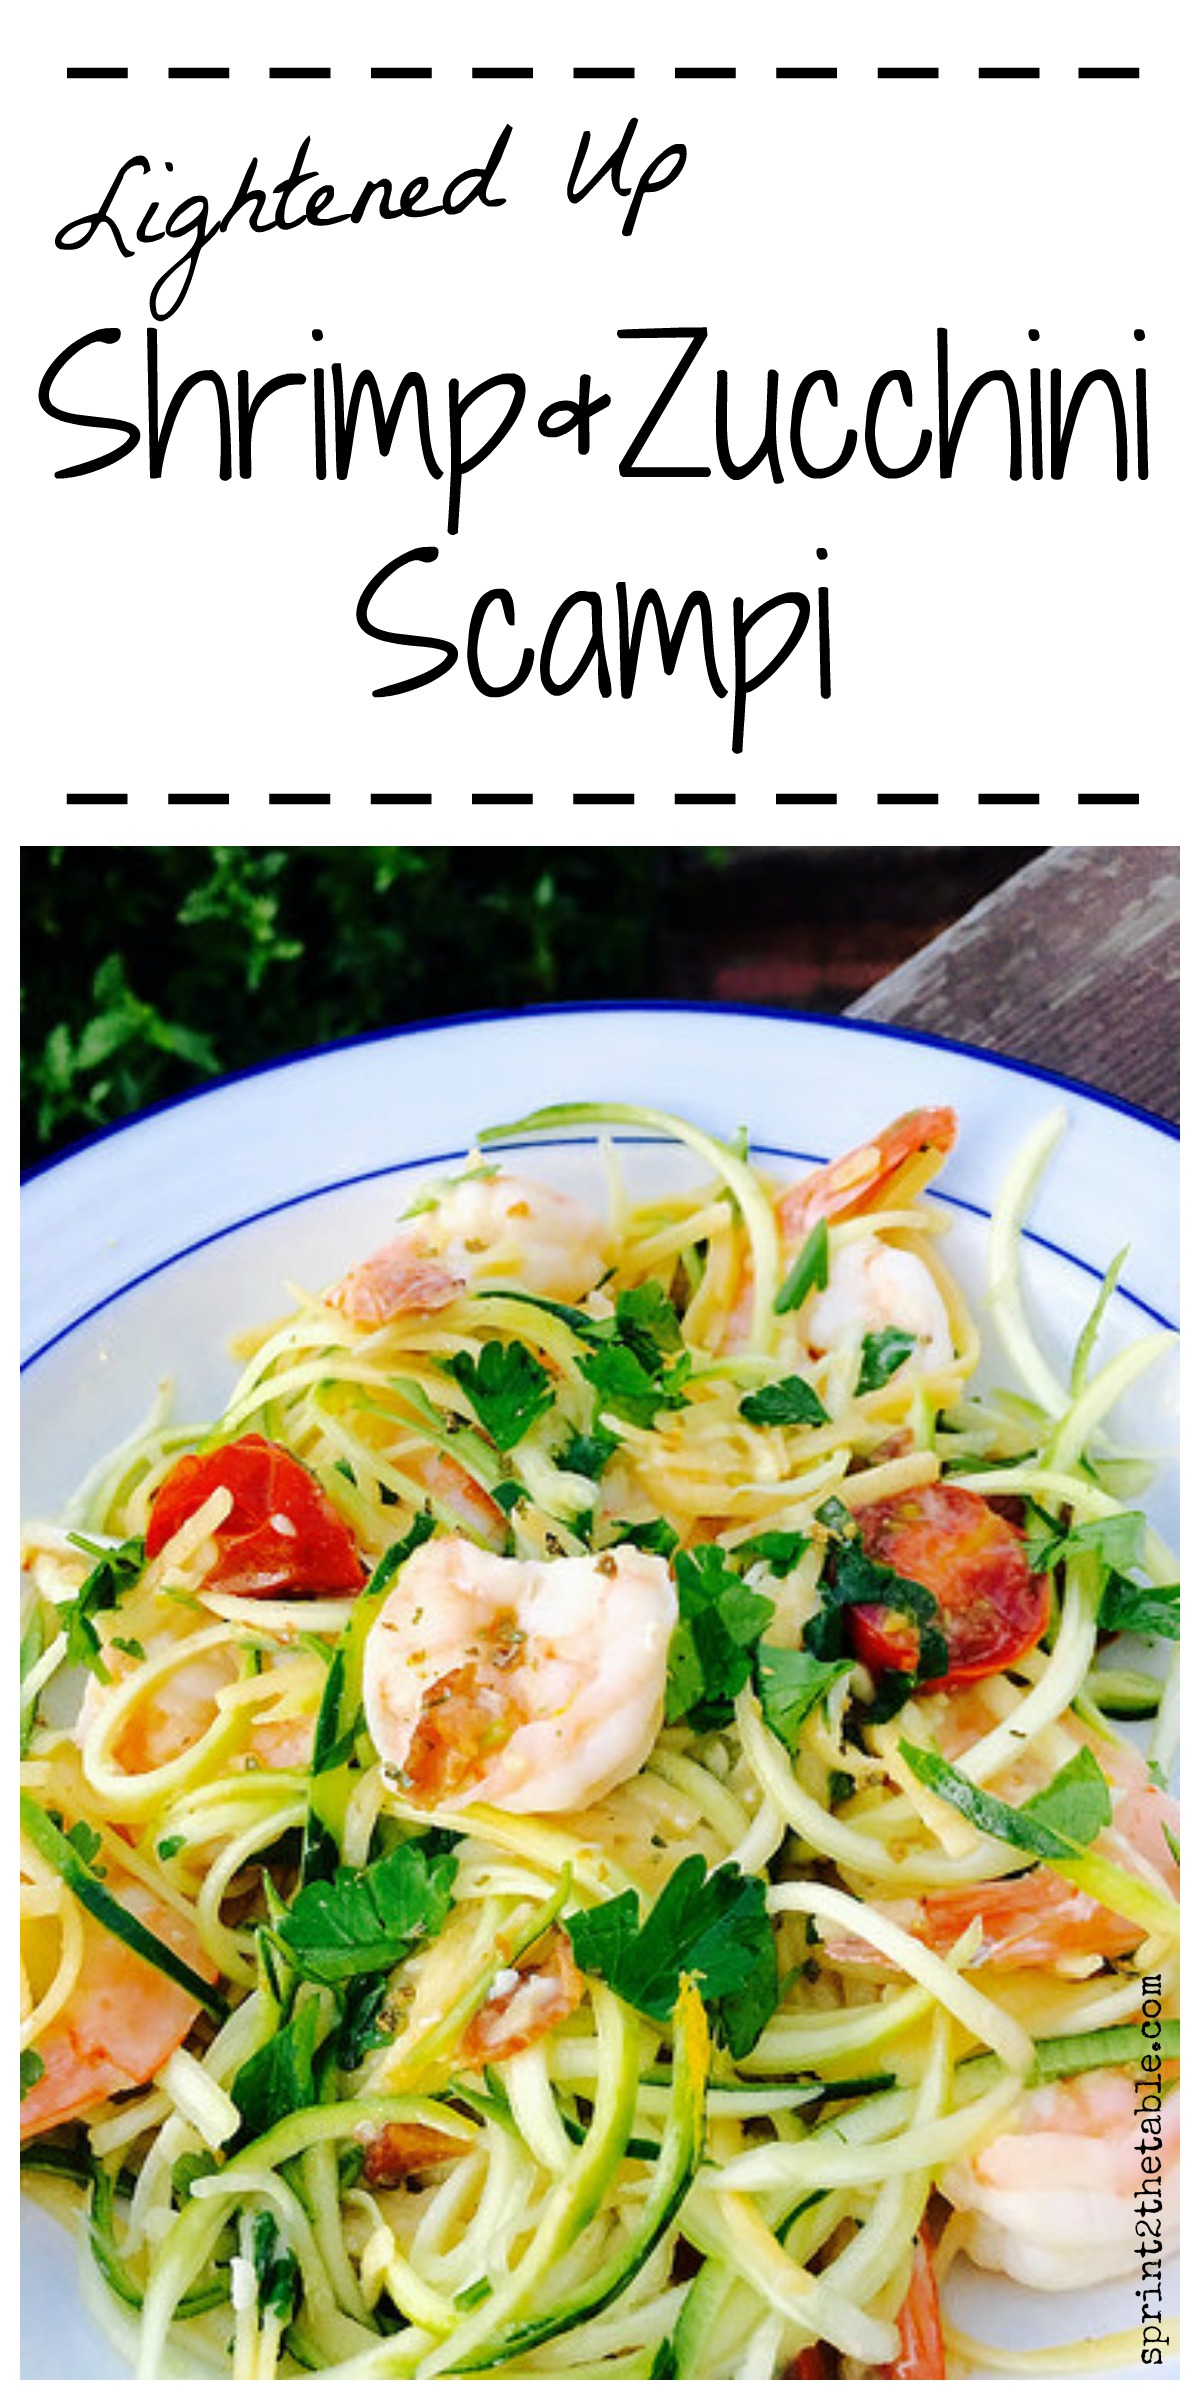 Lightened Up Shrimp & Zucchini Scampi - deliciously easy springtime meal!